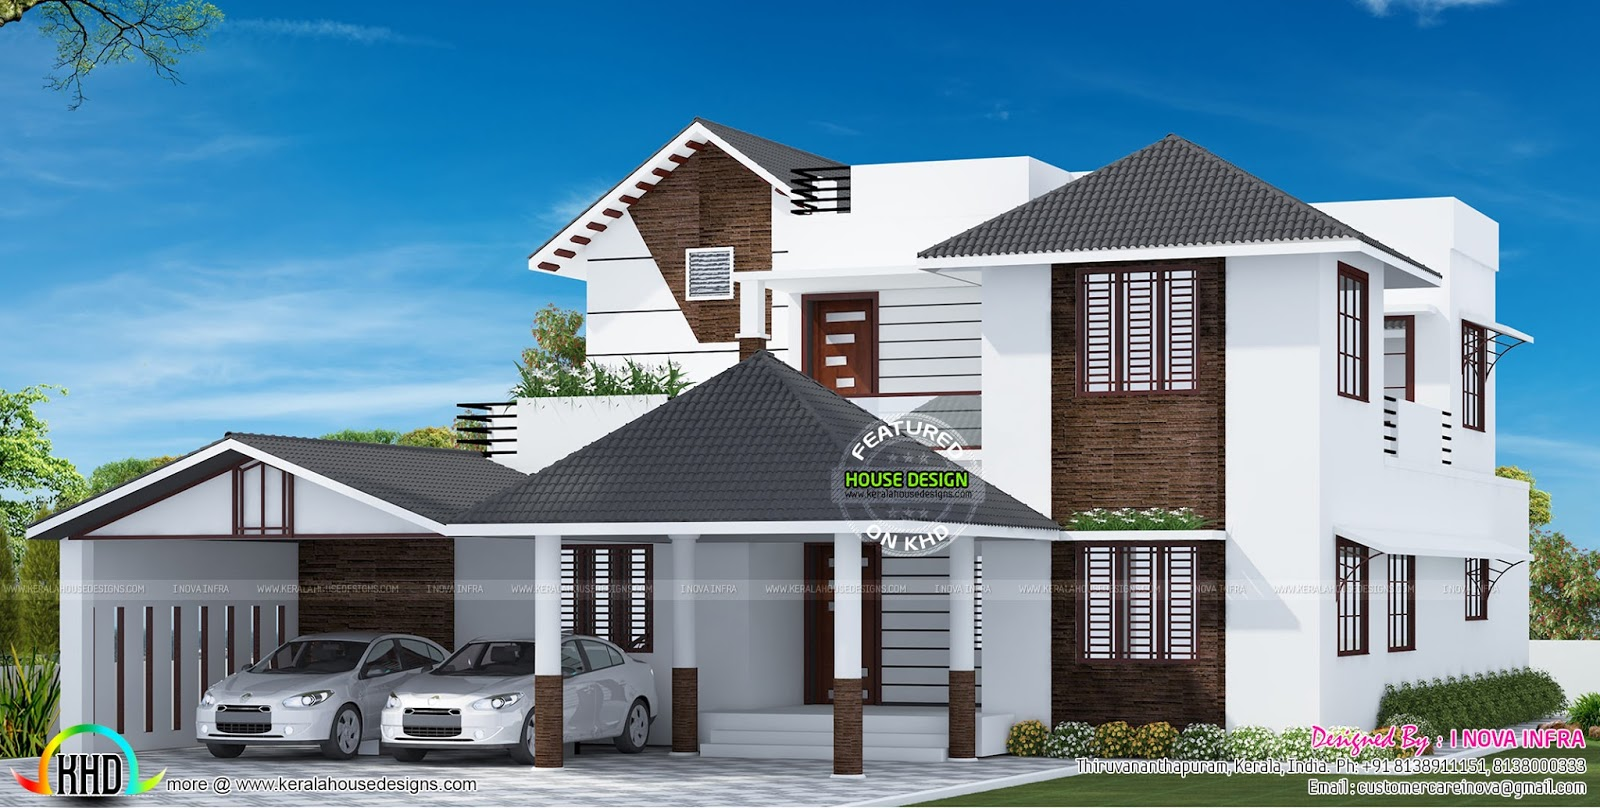 Sloping roof mix house at trivandrum kerala home design for Sloped roof house plans in india